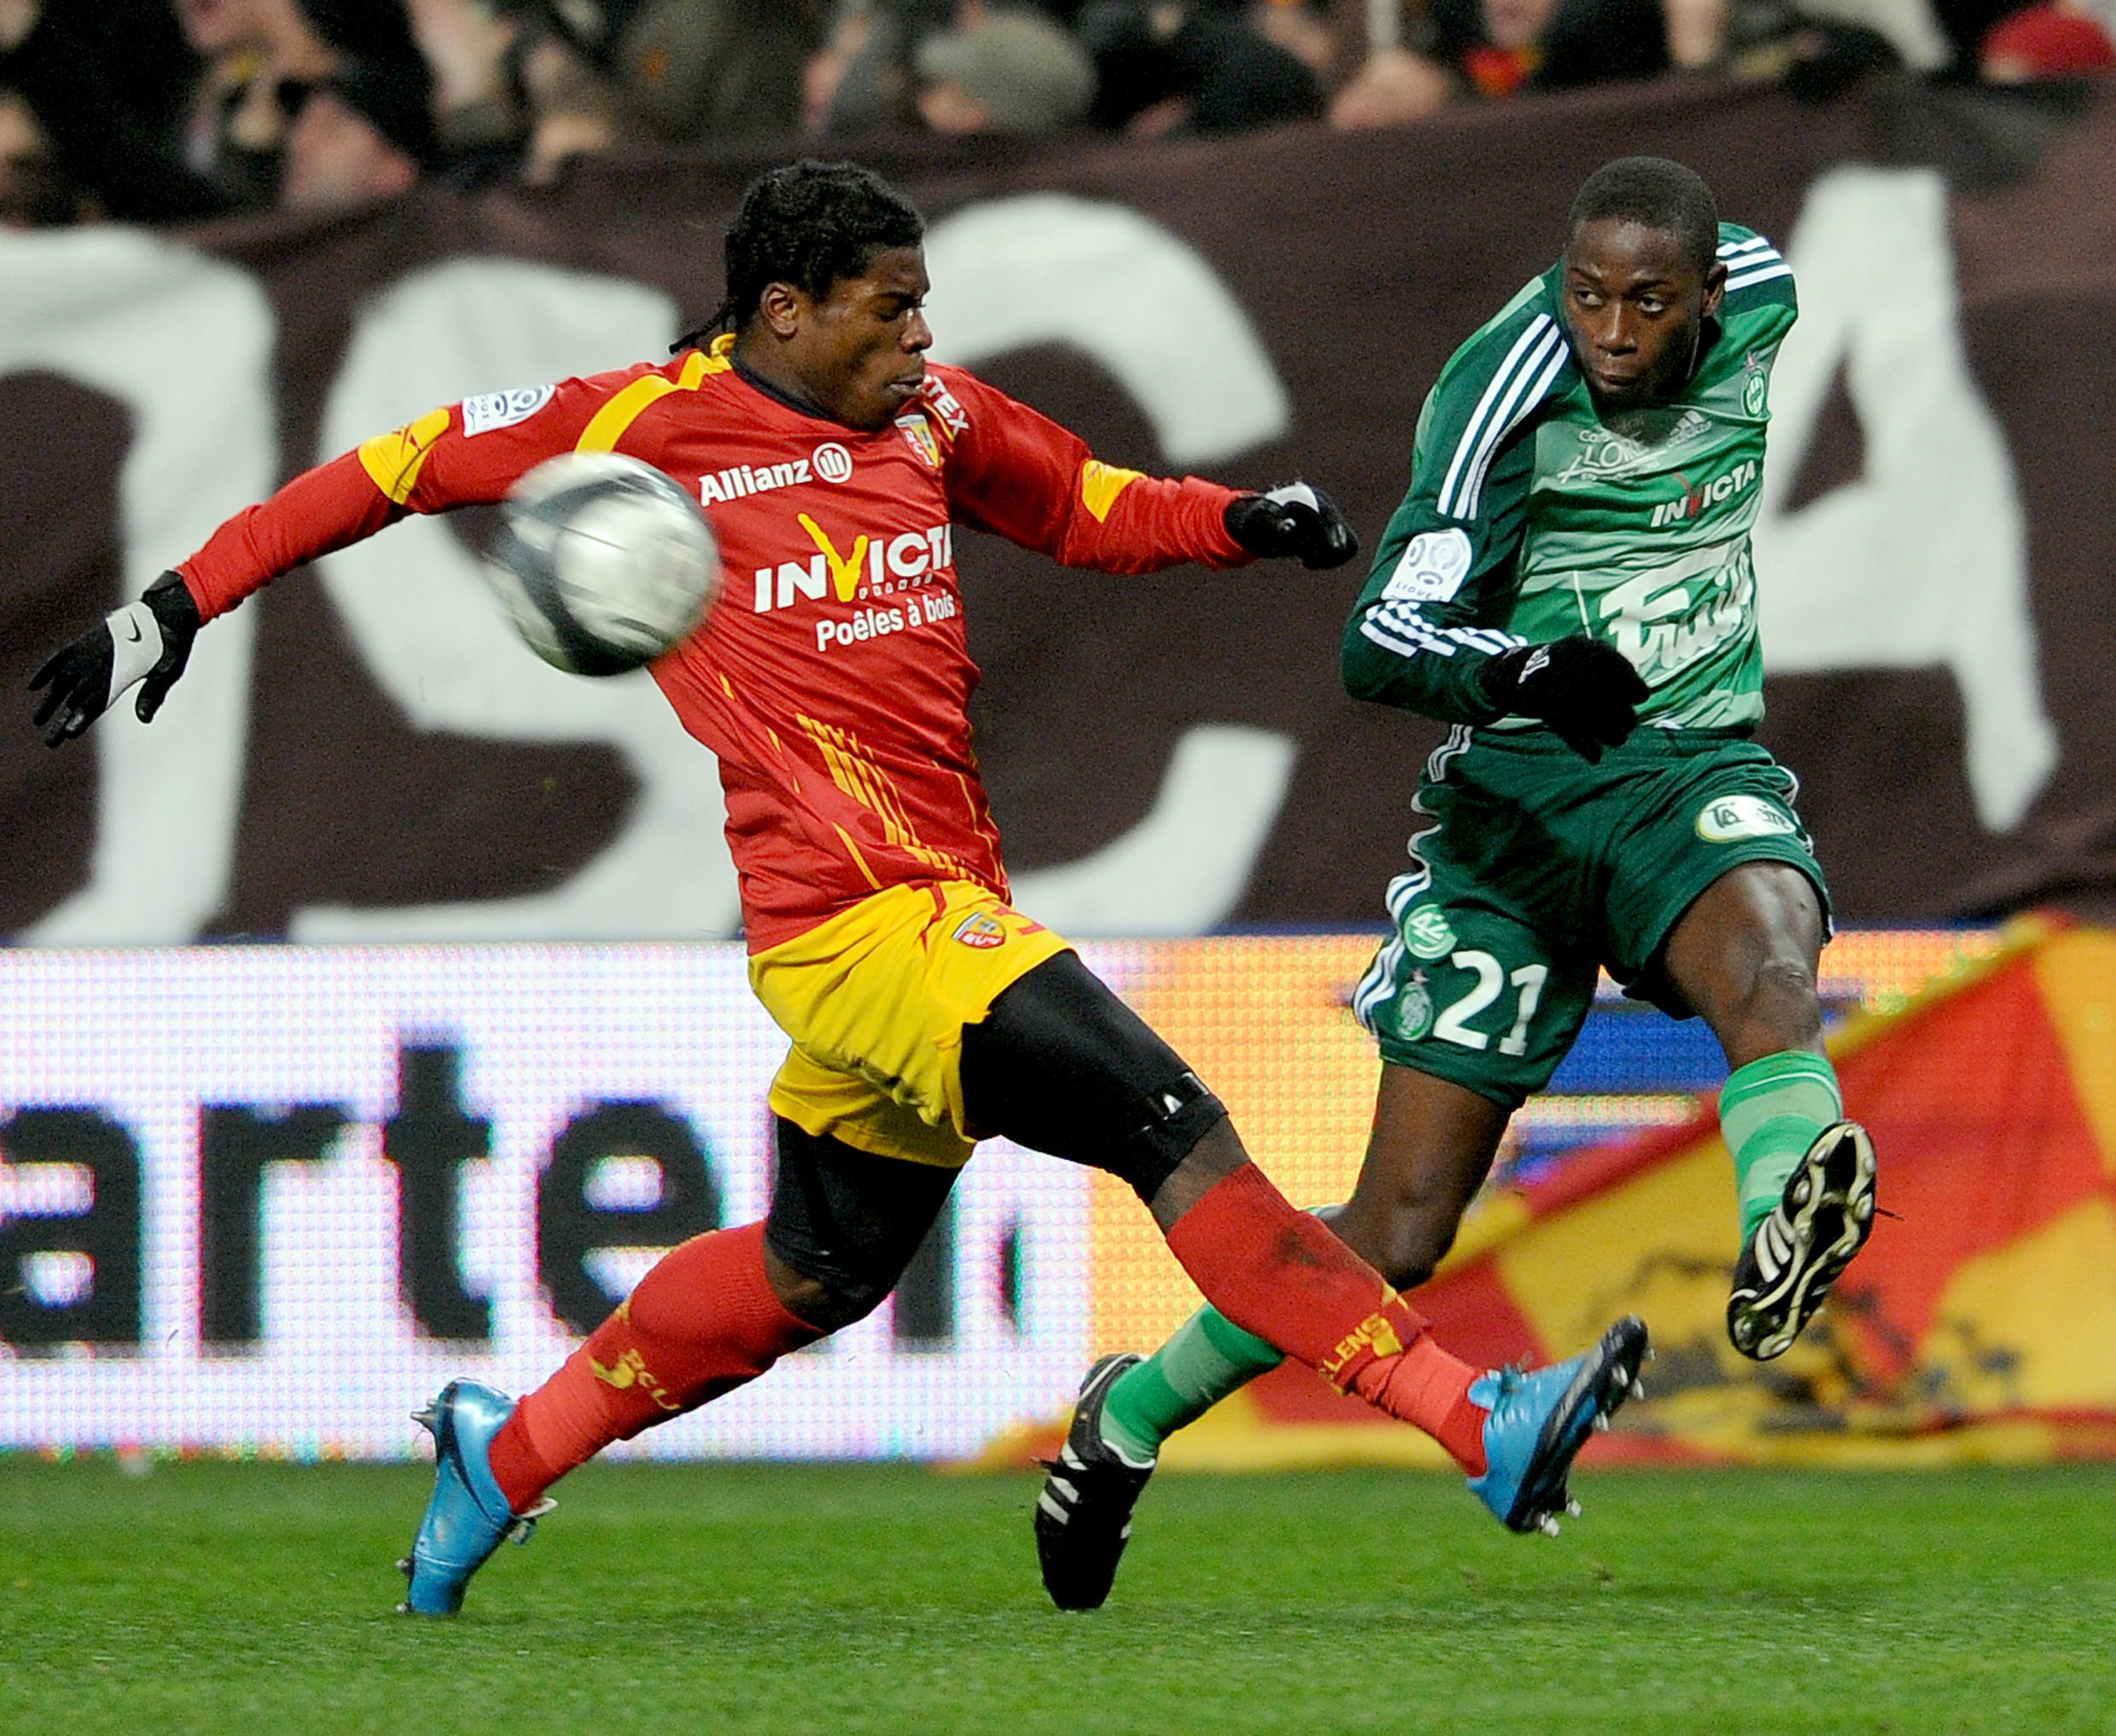 In this December 22, 2009 photo, Lens defender Christopher Aurier (L) vies with Saint-Etienne midfielder Mouhamadou Dabo during a French L1 football match at Felix Bollaert Stadium in Lens, France.